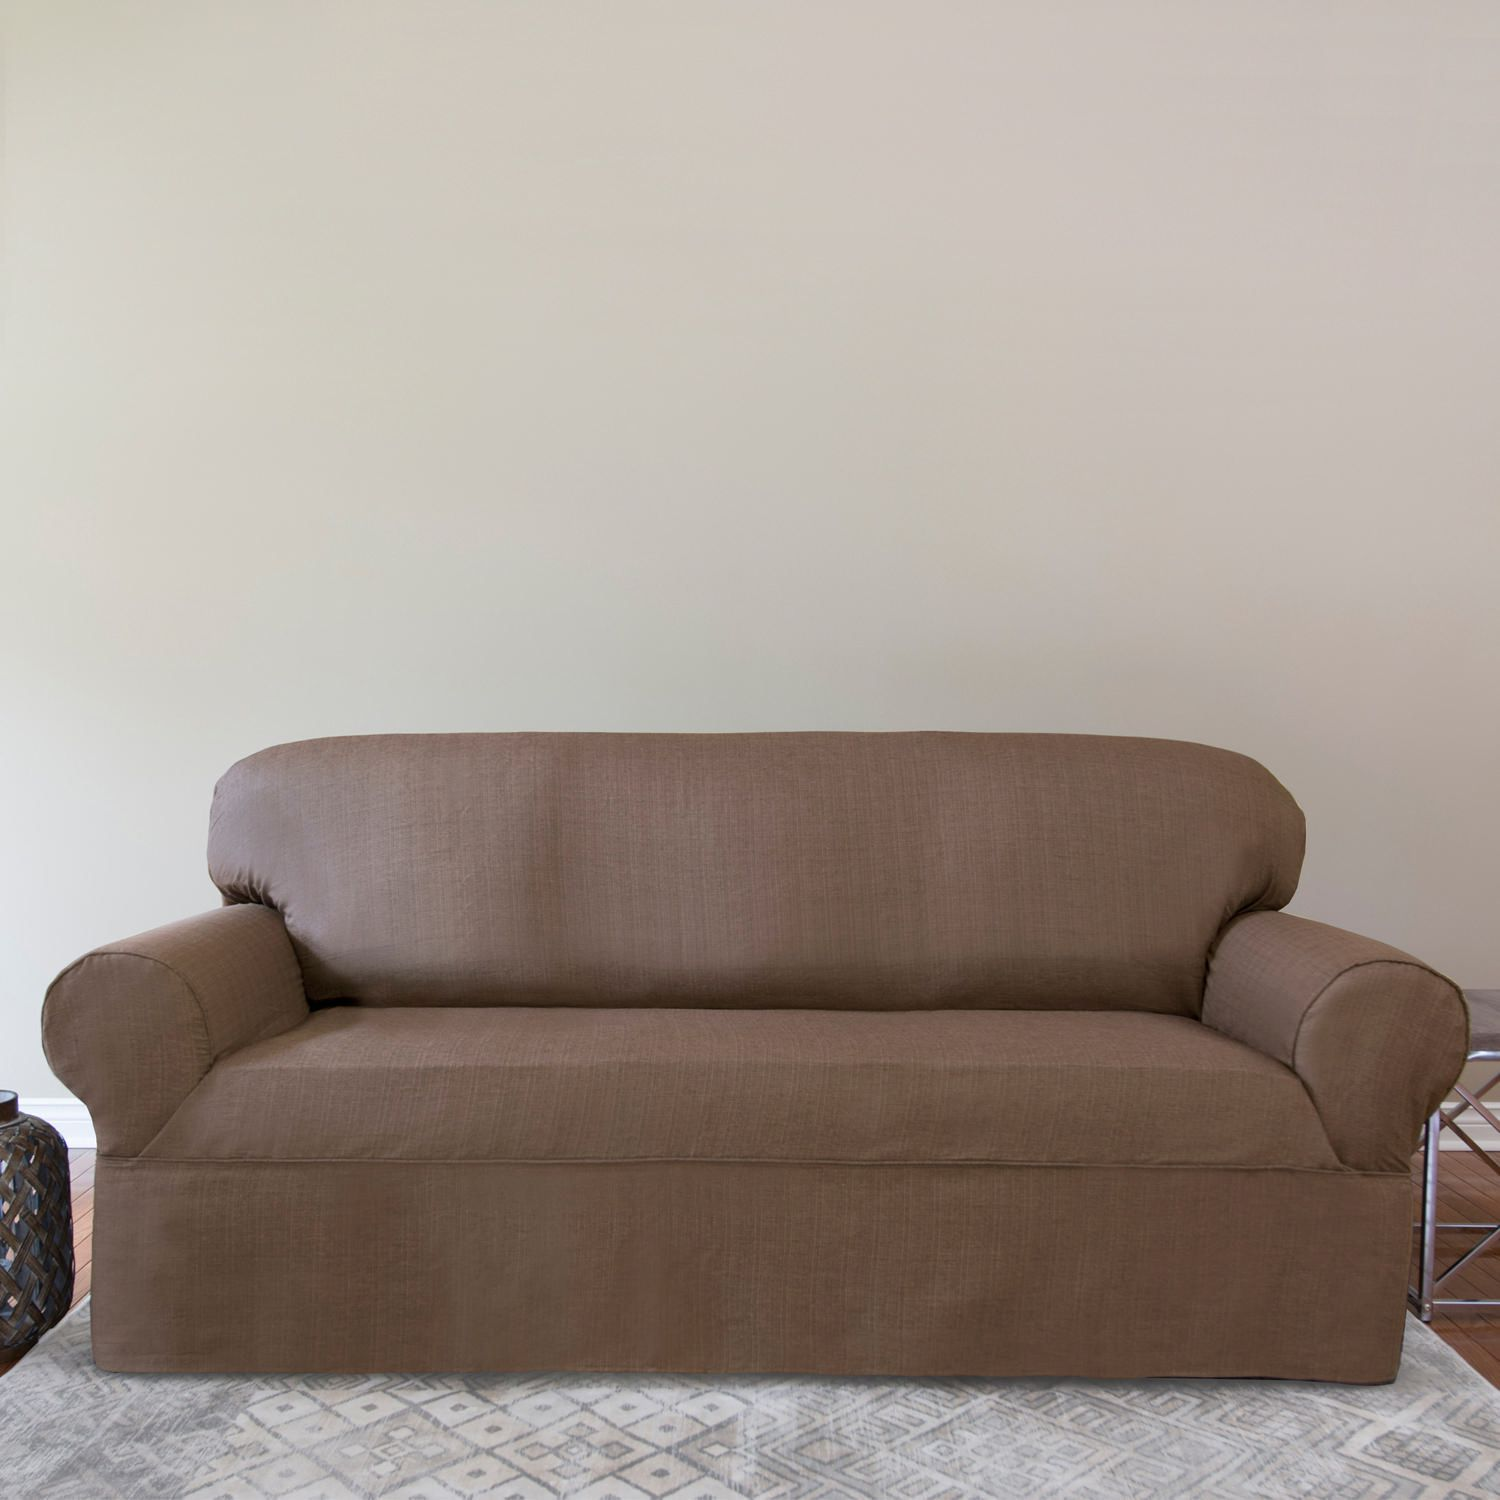 SureFit™ Bayside e Piece Relaxed Fit Sofa Slipcover